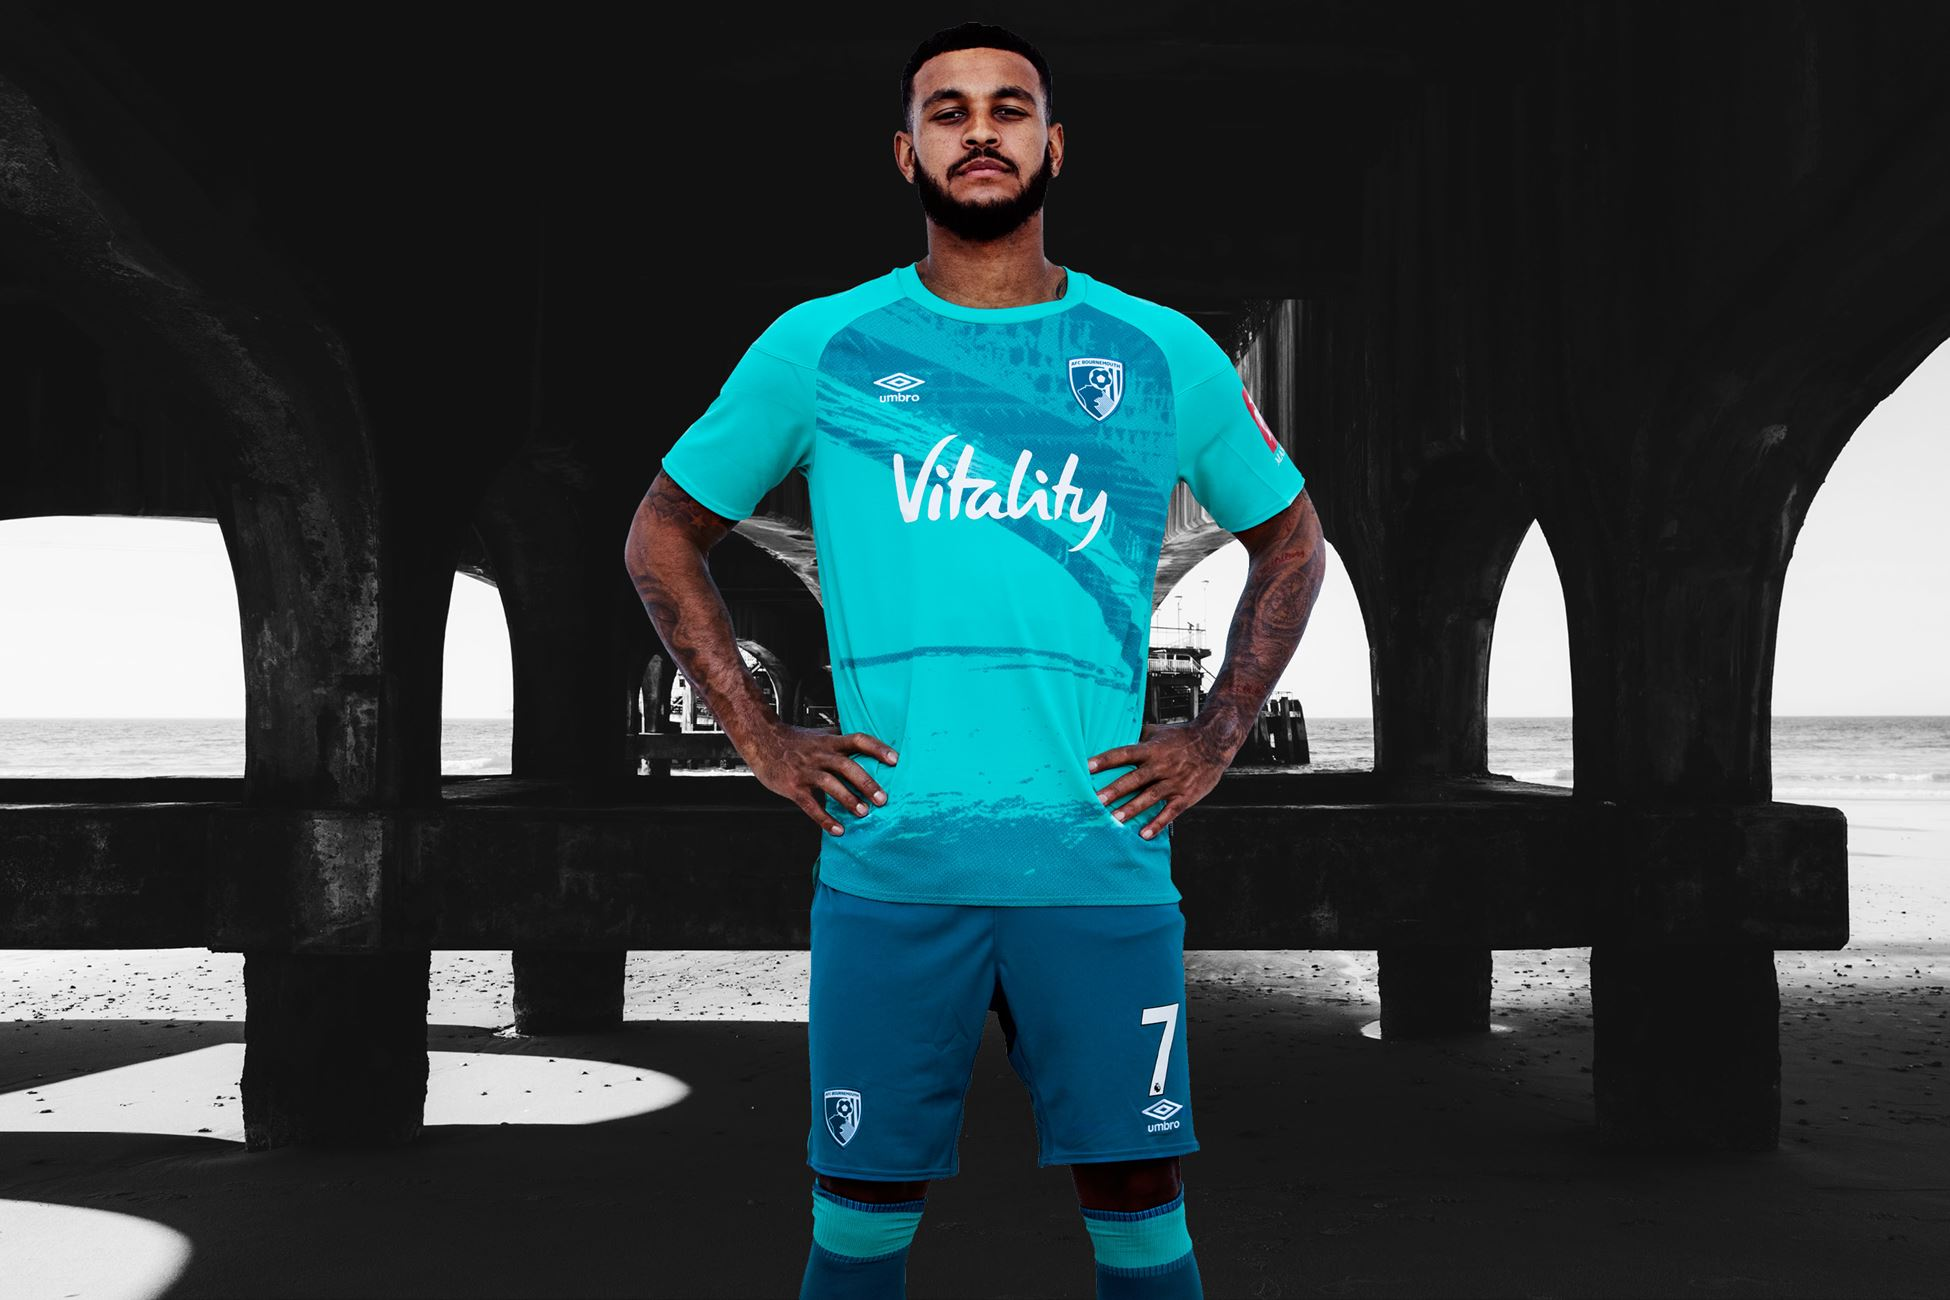 http://www.footballshirtculture.com/images/stories/bournemouth-2020-2021-away-kit/afc_bournemouth_2020_2021_away_kit_b.jpg